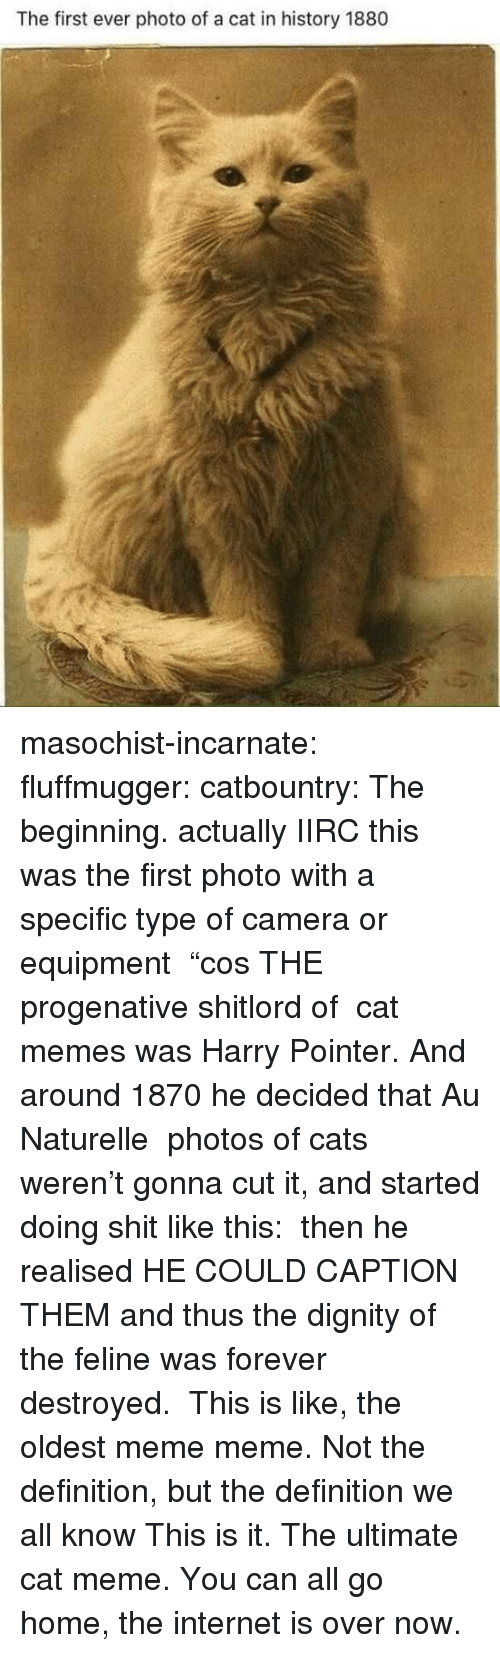 """Meme Meme: The first ever photo of a cat in history 1880 masochist-incarnate:  fluffmugger:  catbountry: The beginning. actually IIRC this was the first photo with a specific type of camera or equipment """"cos THE progenative shitlord of cat memes was Harry Pointer. And around 1870 he decided that Au Naturelle photos of cats weren't gonna cut it, and started doing shit like this: then he realised HE COULD CAPTION THEM and thus the dignity of the feline was forever destroyed.   This is like, the oldest meme meme. Not the definition, but the definition we all know   This is it. The ultimate cat meme. You can all go home, the internet is over now."""